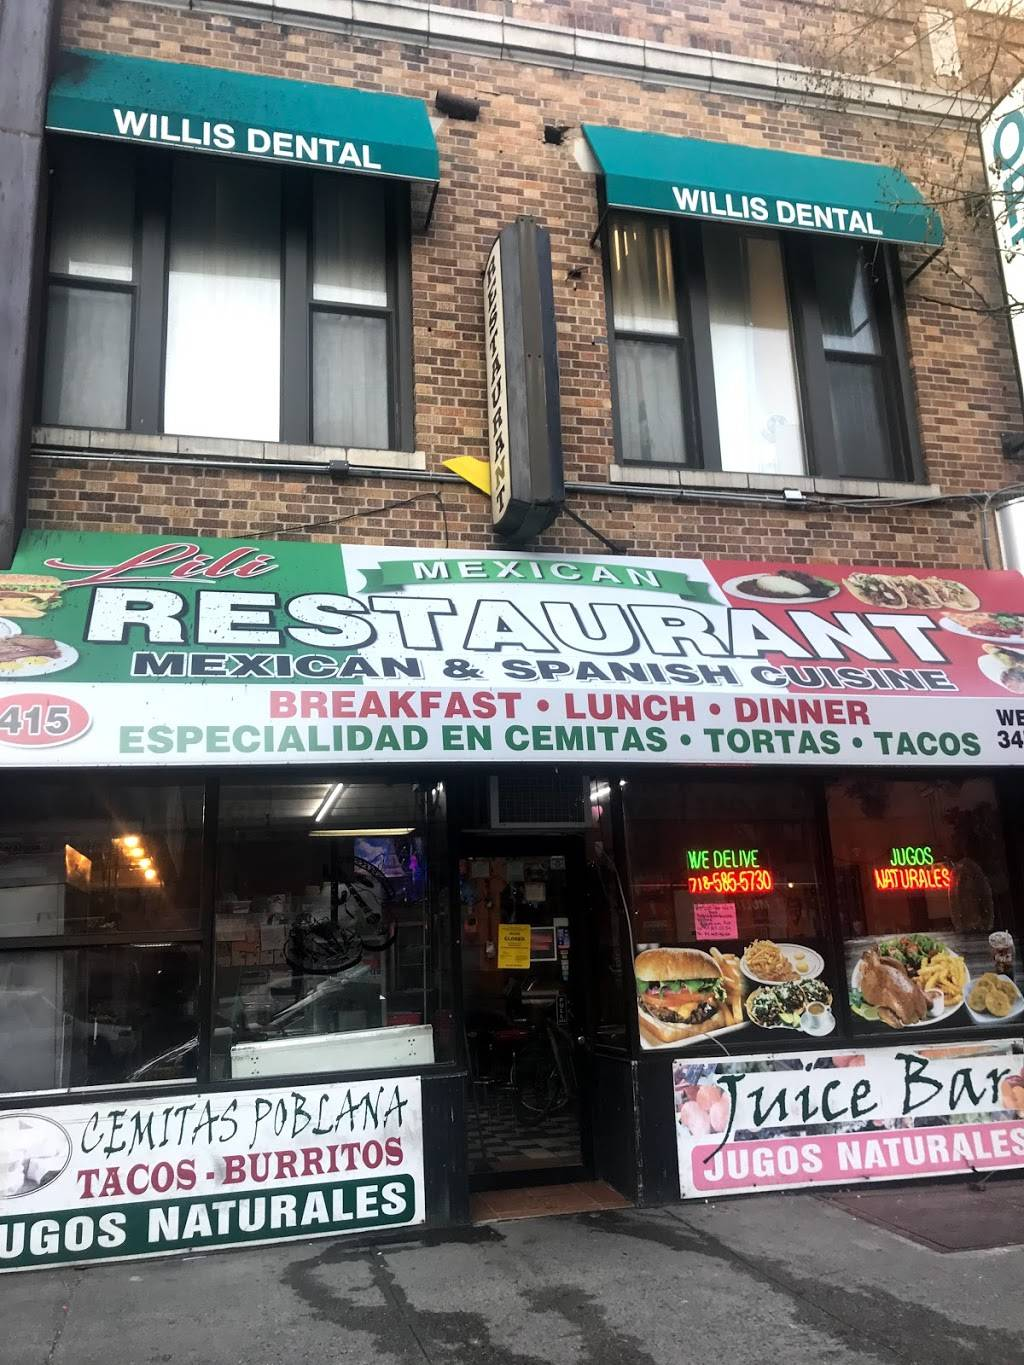 Lili | restaurant | 415 E 138th St, Bronx, NY 10454, USA | 3472978550 OR +1 347-297-8550